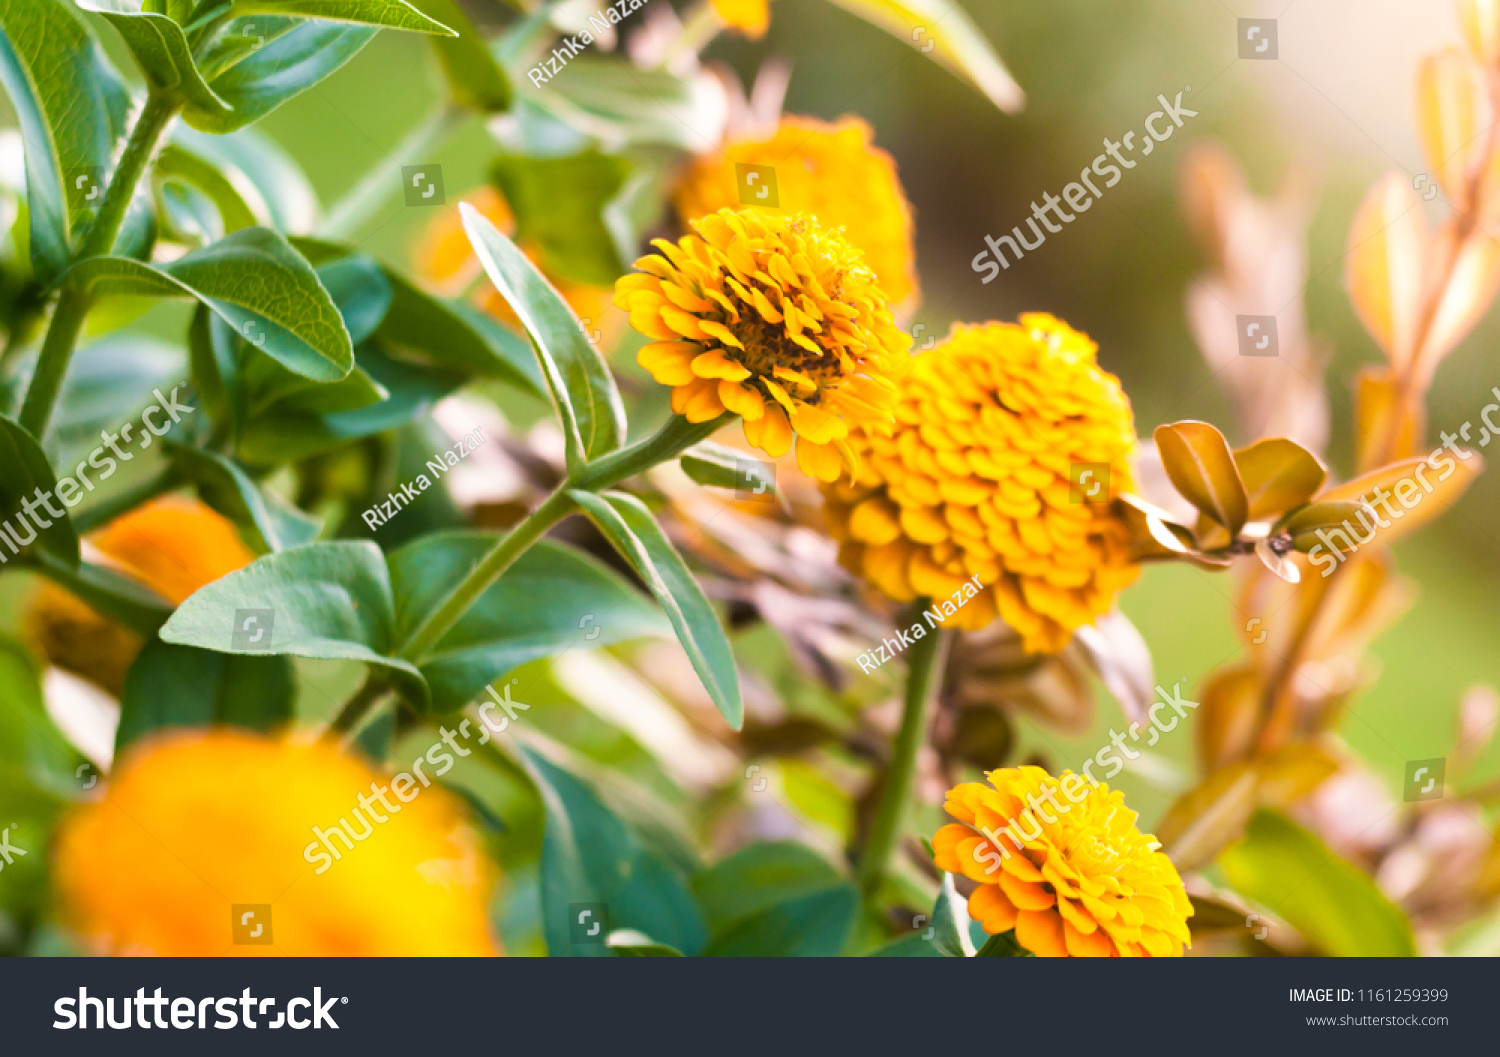 Beautiful yellow flowers beautiful blurry background stock photo beautiful yellow flowers with a beautiful blurry background the concept of natures beauty izmirmasajfo